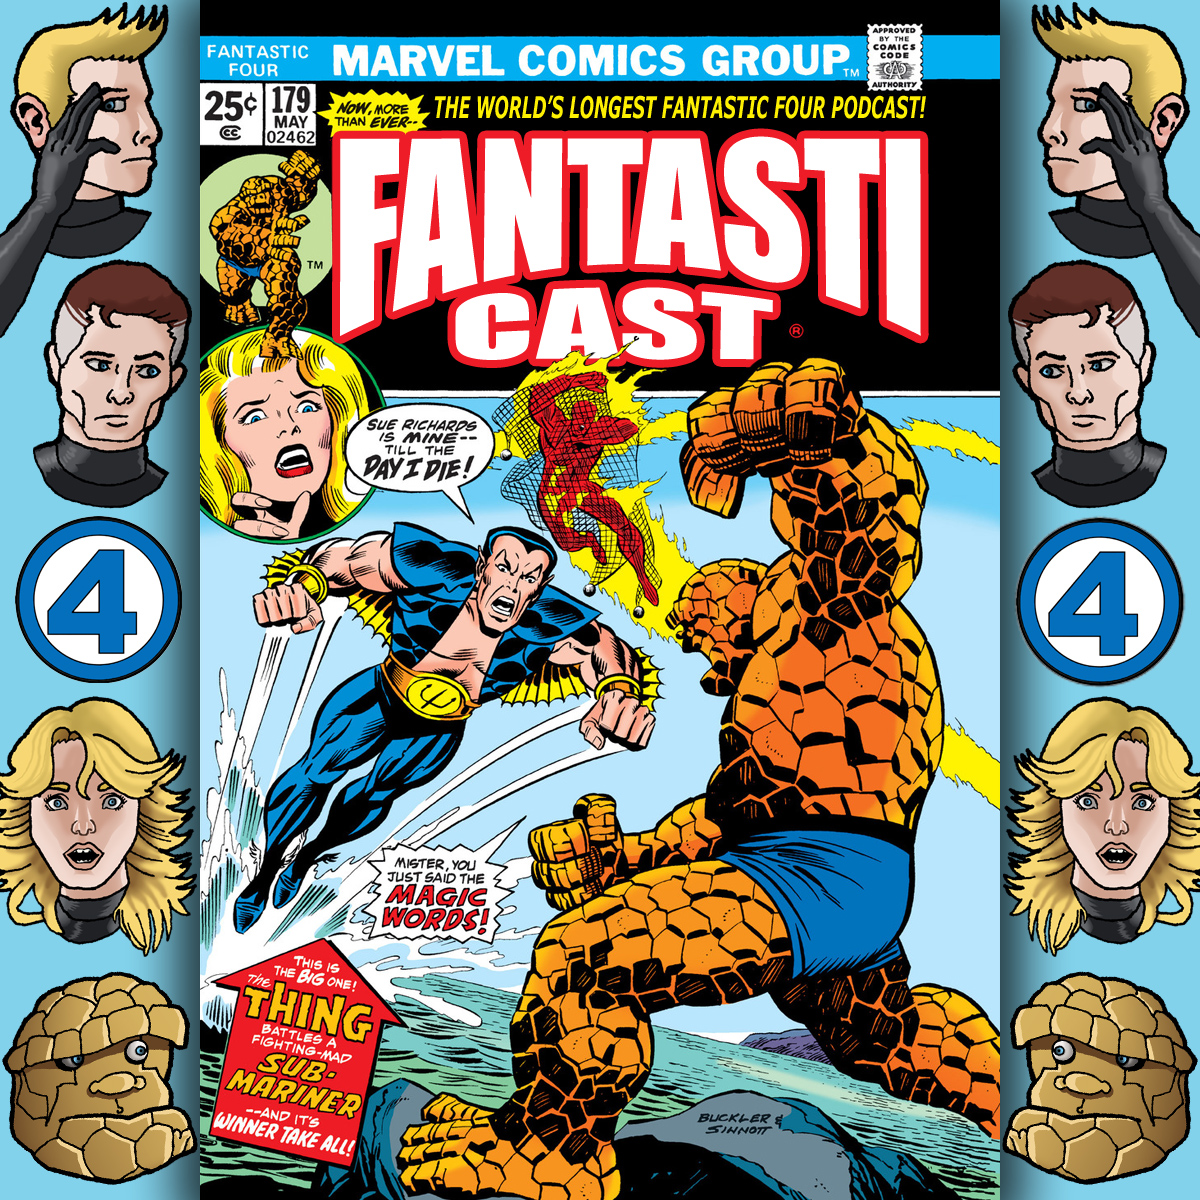 Episode 179: Fantastic Four #147 - The Sub-Mariner Strikes